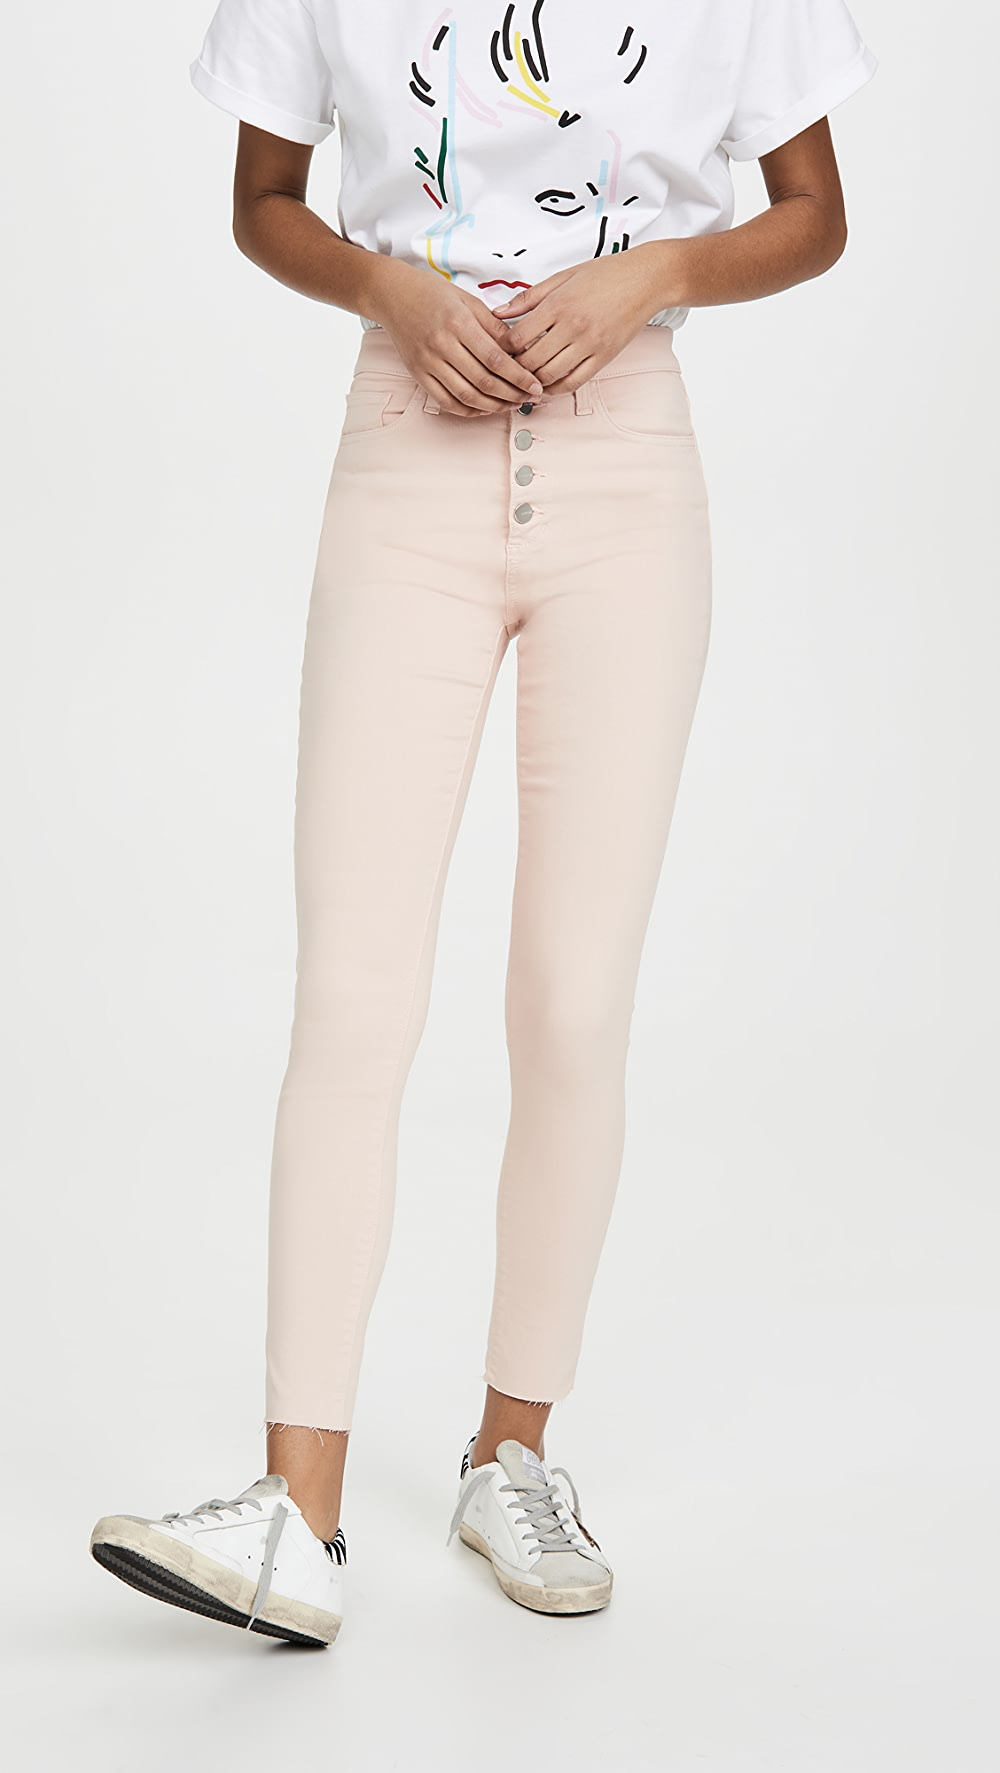 Intellective Joe's Jeans - The Charlie Ankle Exposed Button Fly Jeans Complete In Specifications